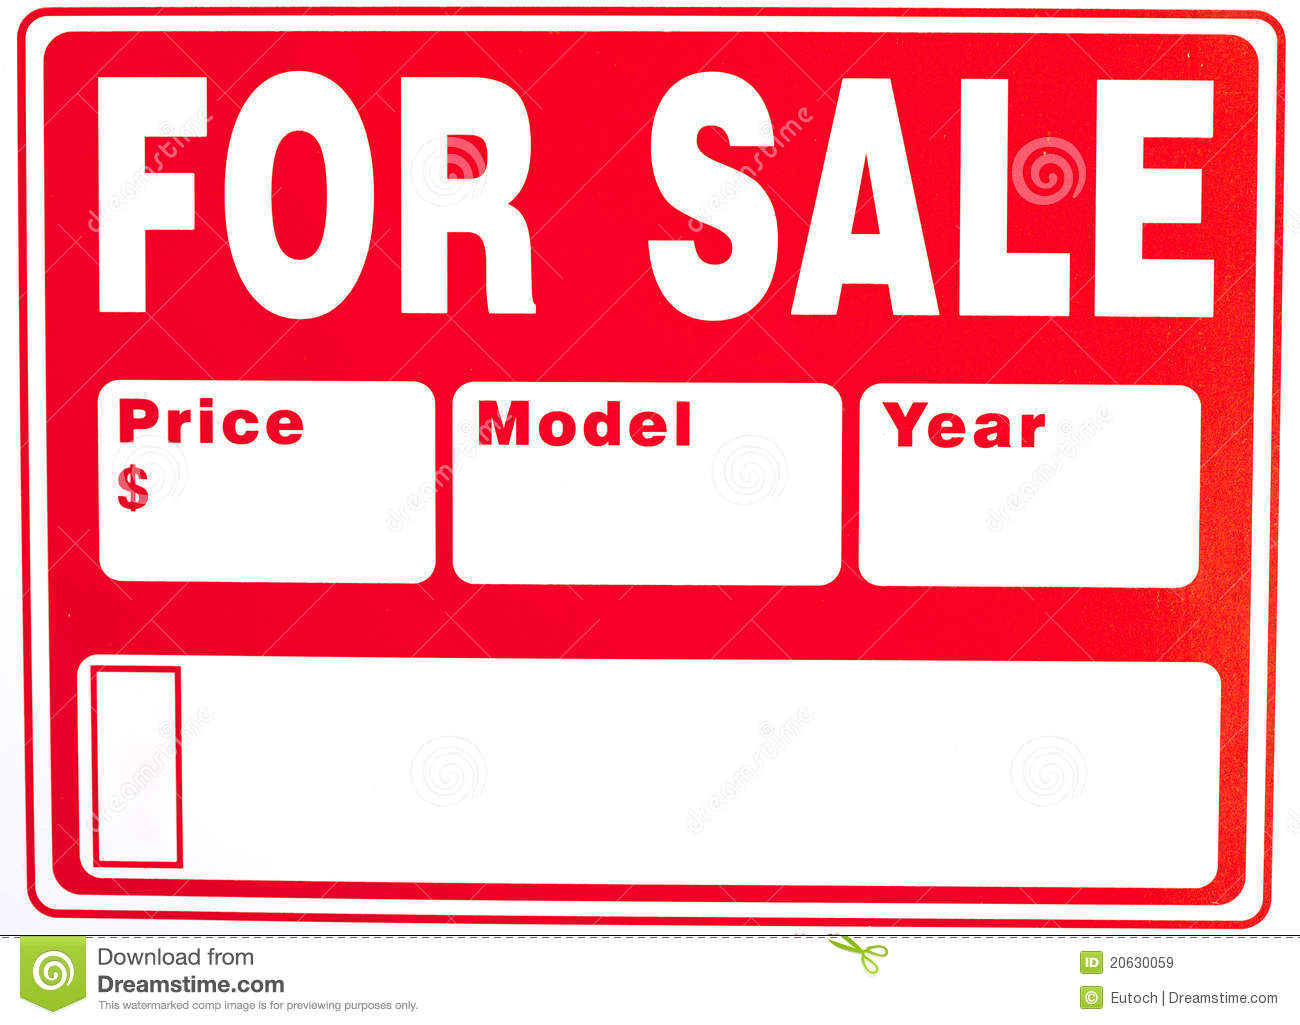 photo regarding Printable for Sale Signs for Cars referred to as Free of charge Printable Sale Symptoms Templates